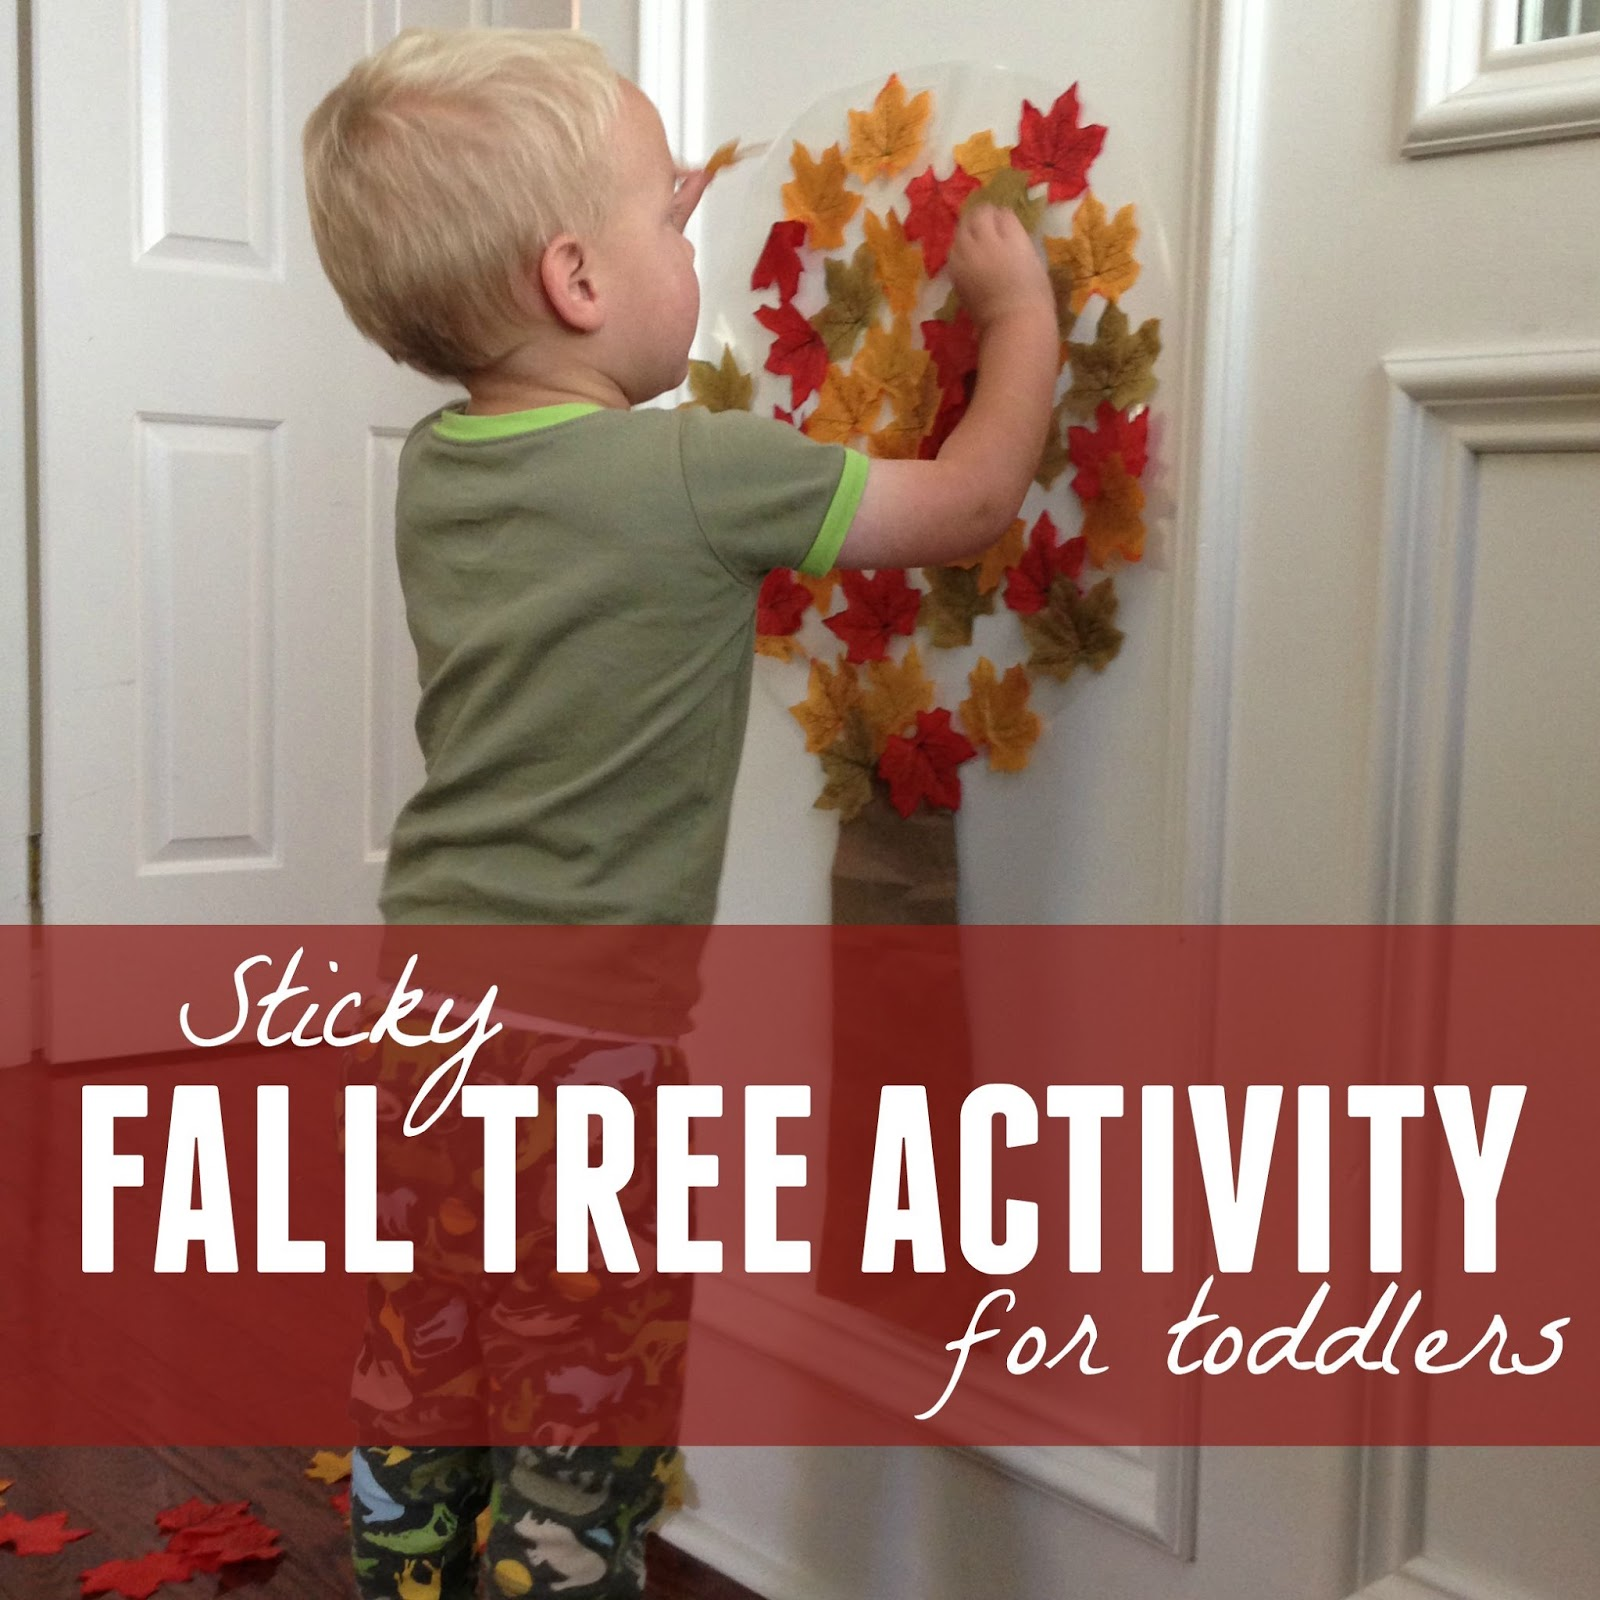 Fall colors activities for toddlers - Today We Are Sharing A Super Easy Fall Tree Activity For Toddlers That We Created It Is Much Simpler Than Some Of The Sticky Walls We Ve Created Before And